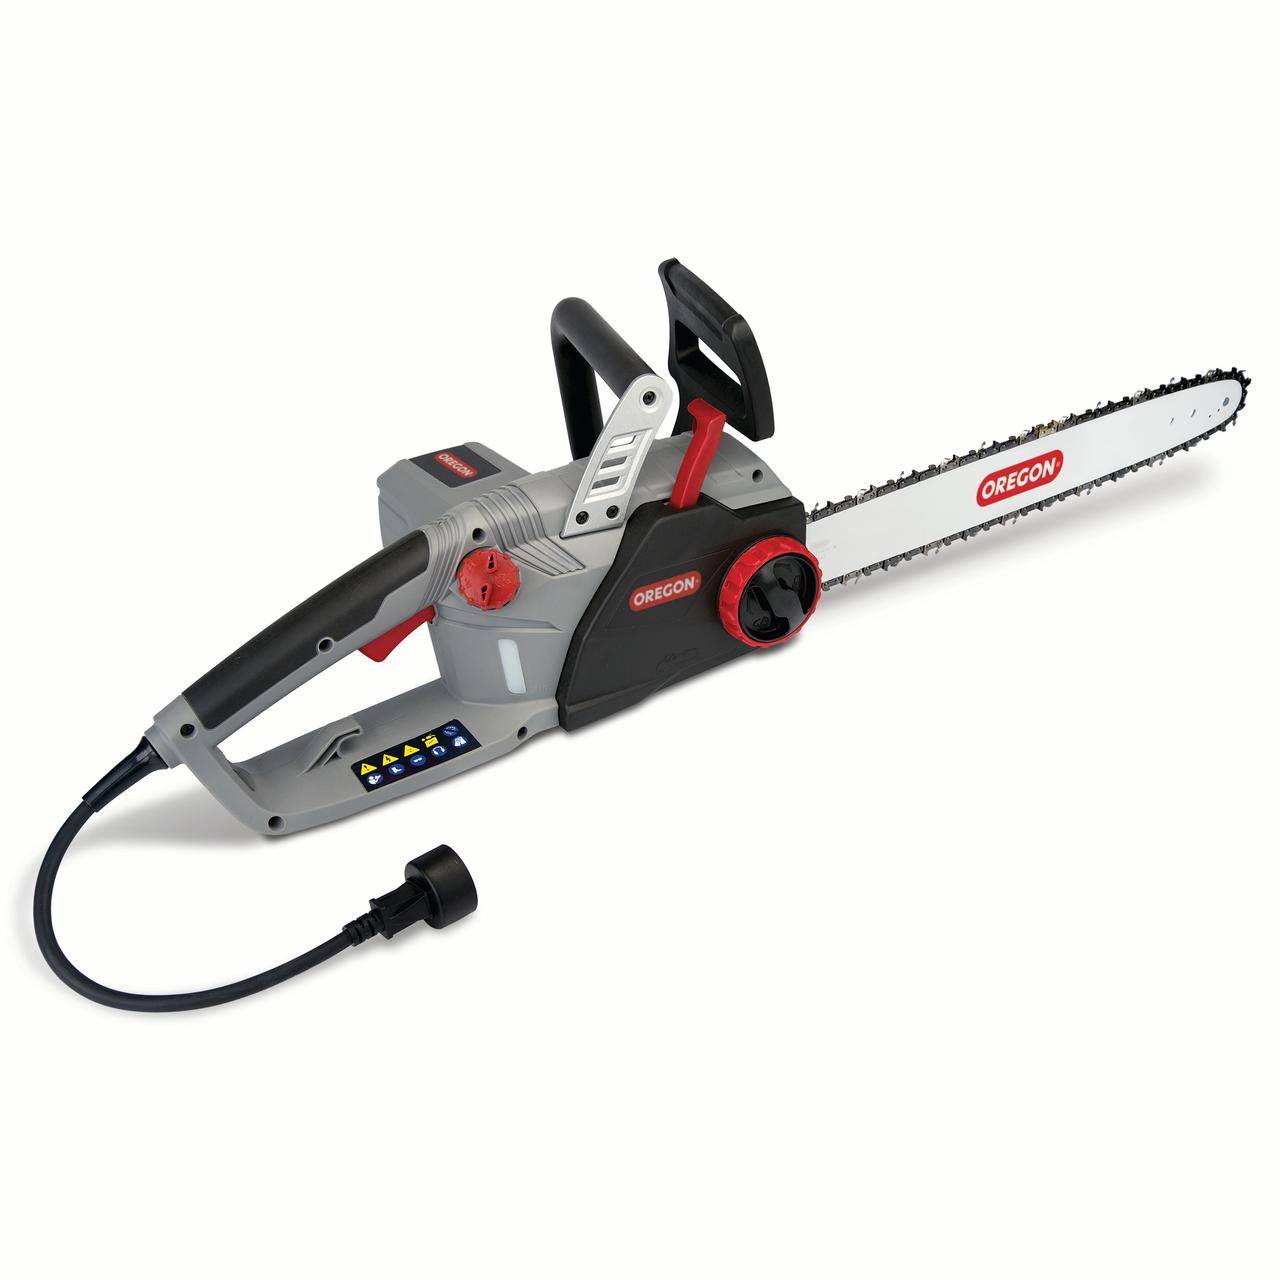 Oregon CS1500 Self-Sharpening 15 Amp Electric Chain Saw